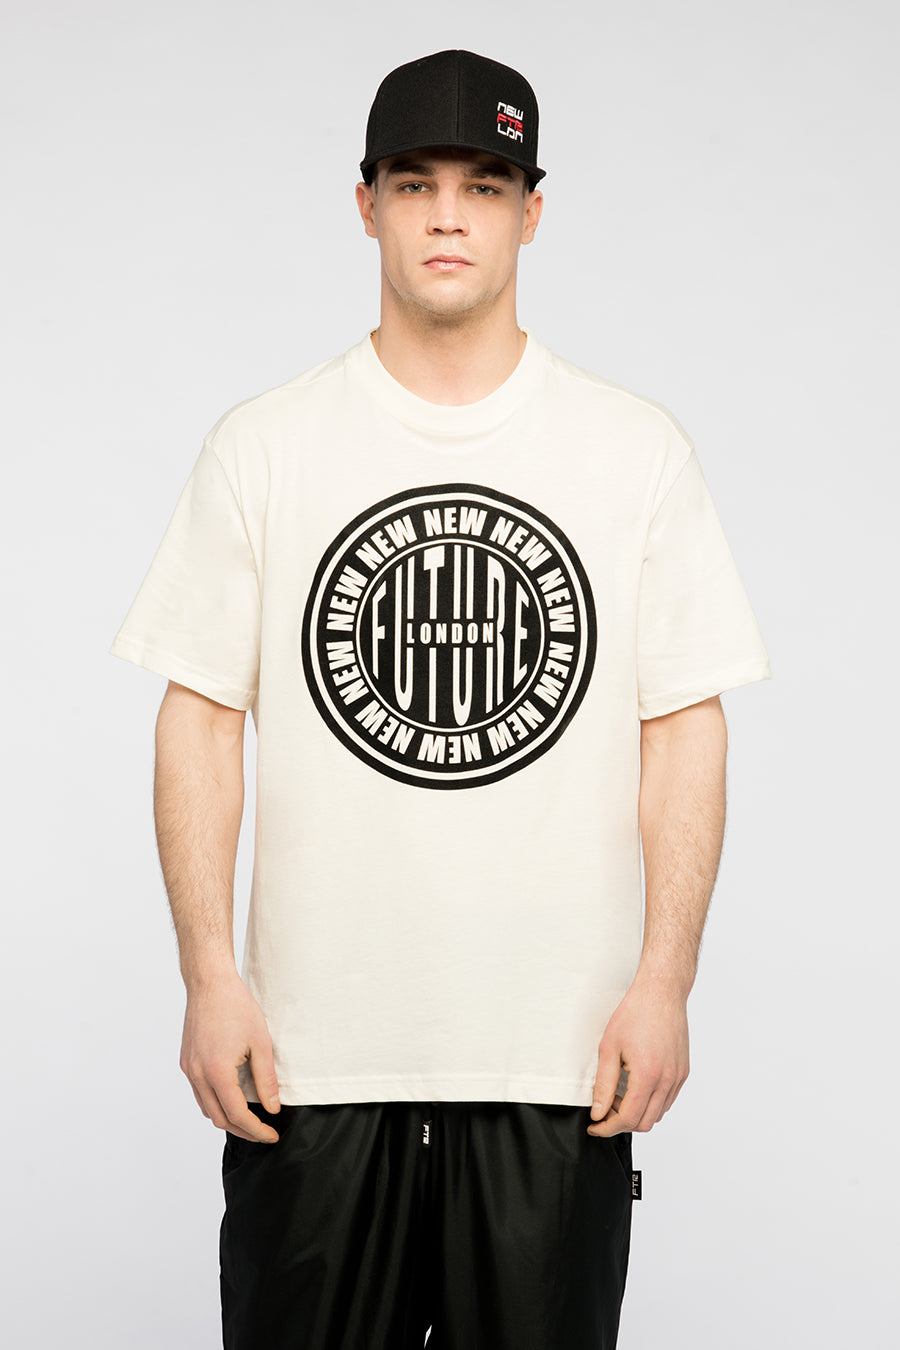 new_future_london_stamp_t_shirt_wht_2_1-1.jpg